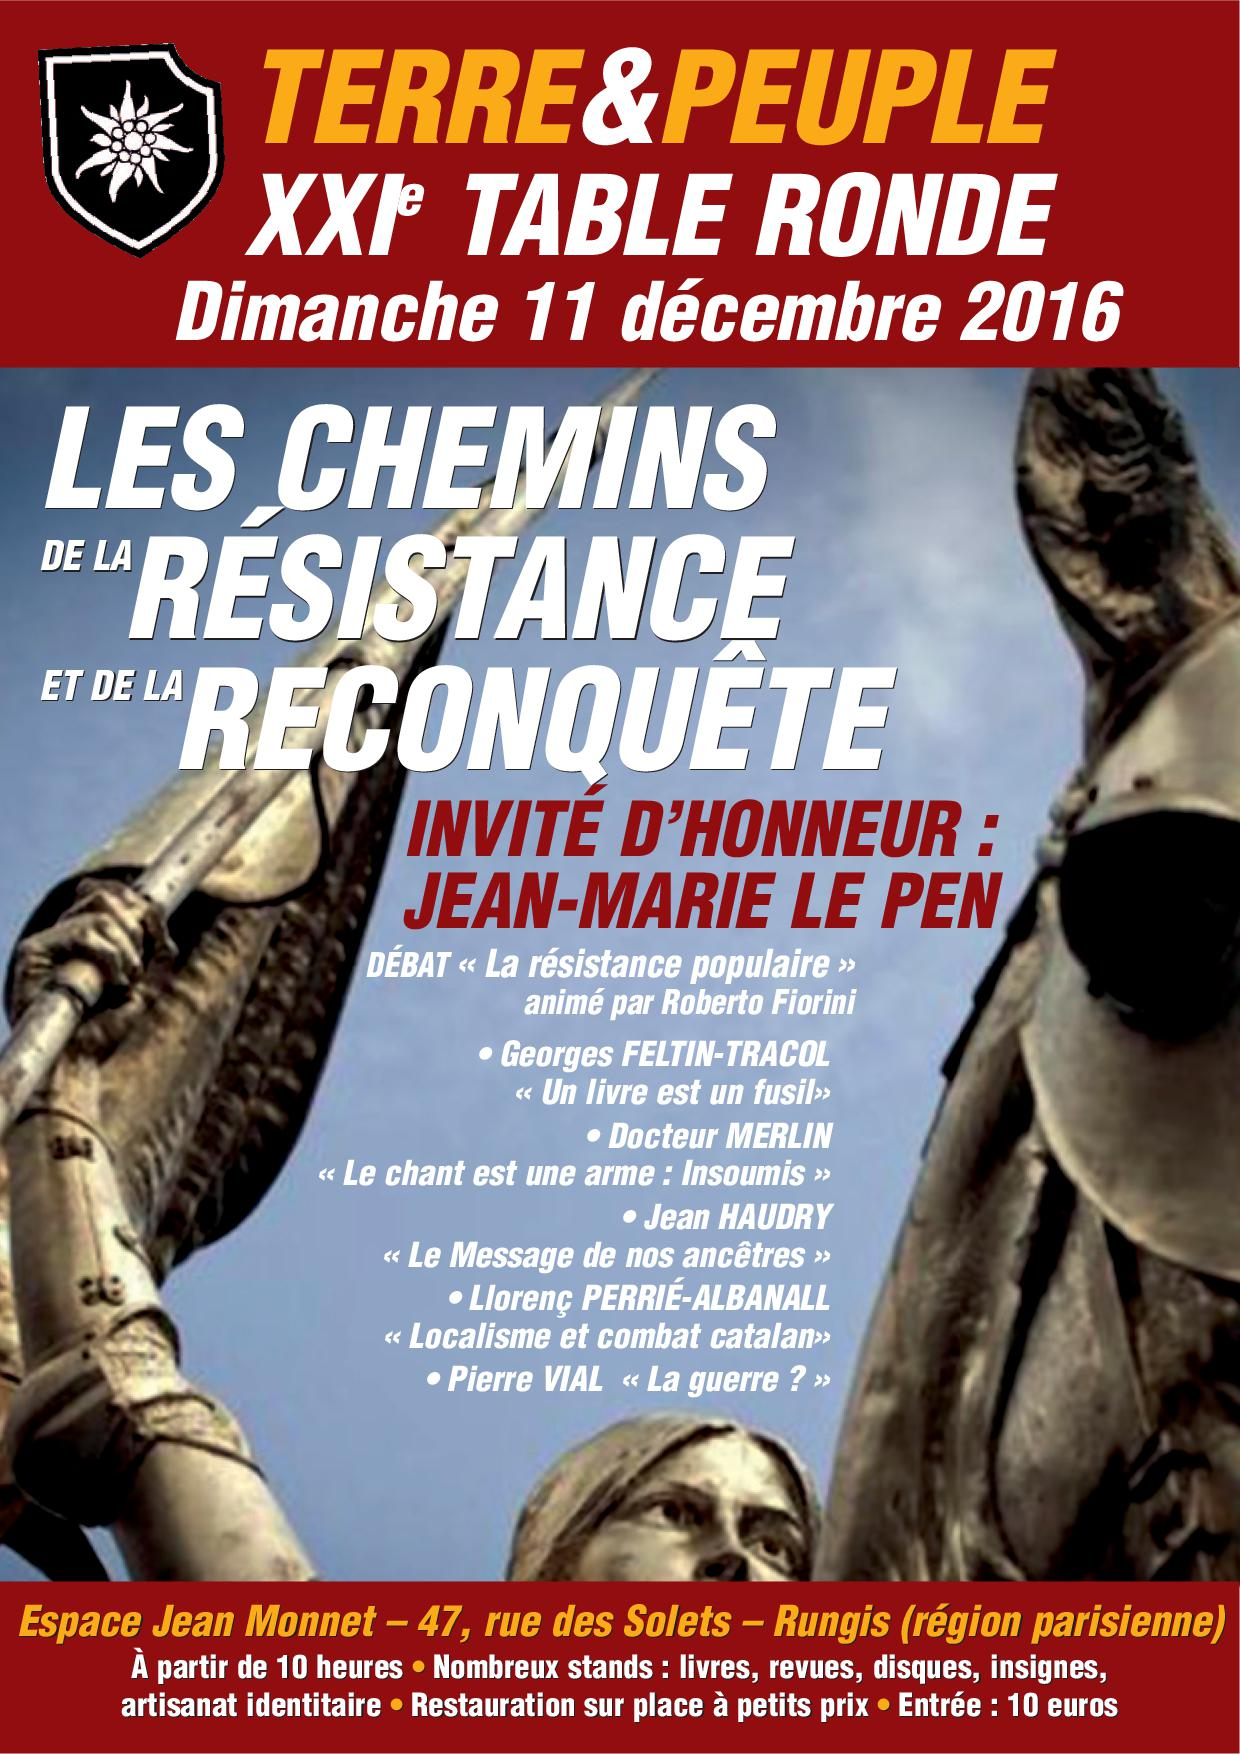 flyer tr 2016 table ronde de terre et peuple